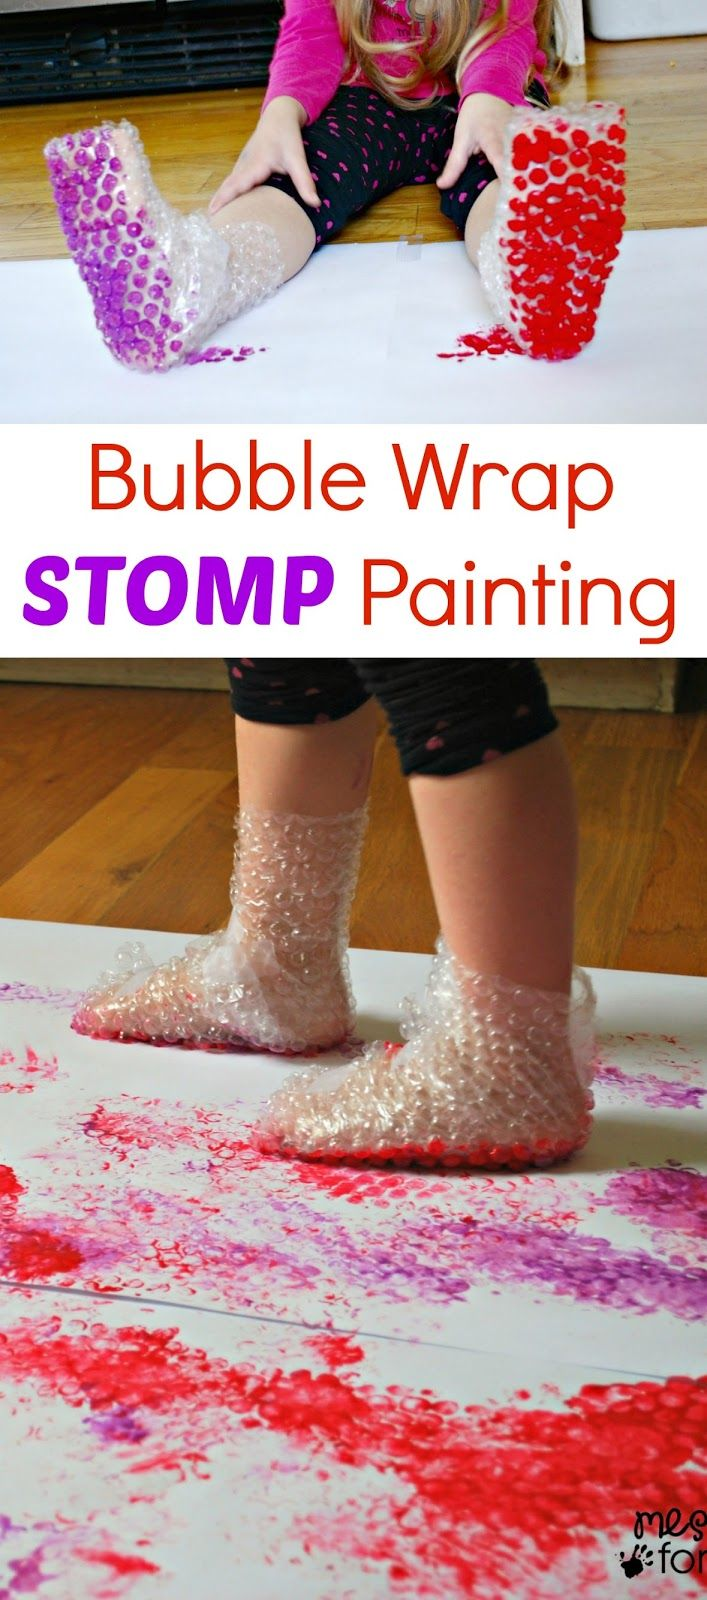 Oh my gosh! My kids would L-O-V-E this!! Bubble wrap stomp painting. How funny.